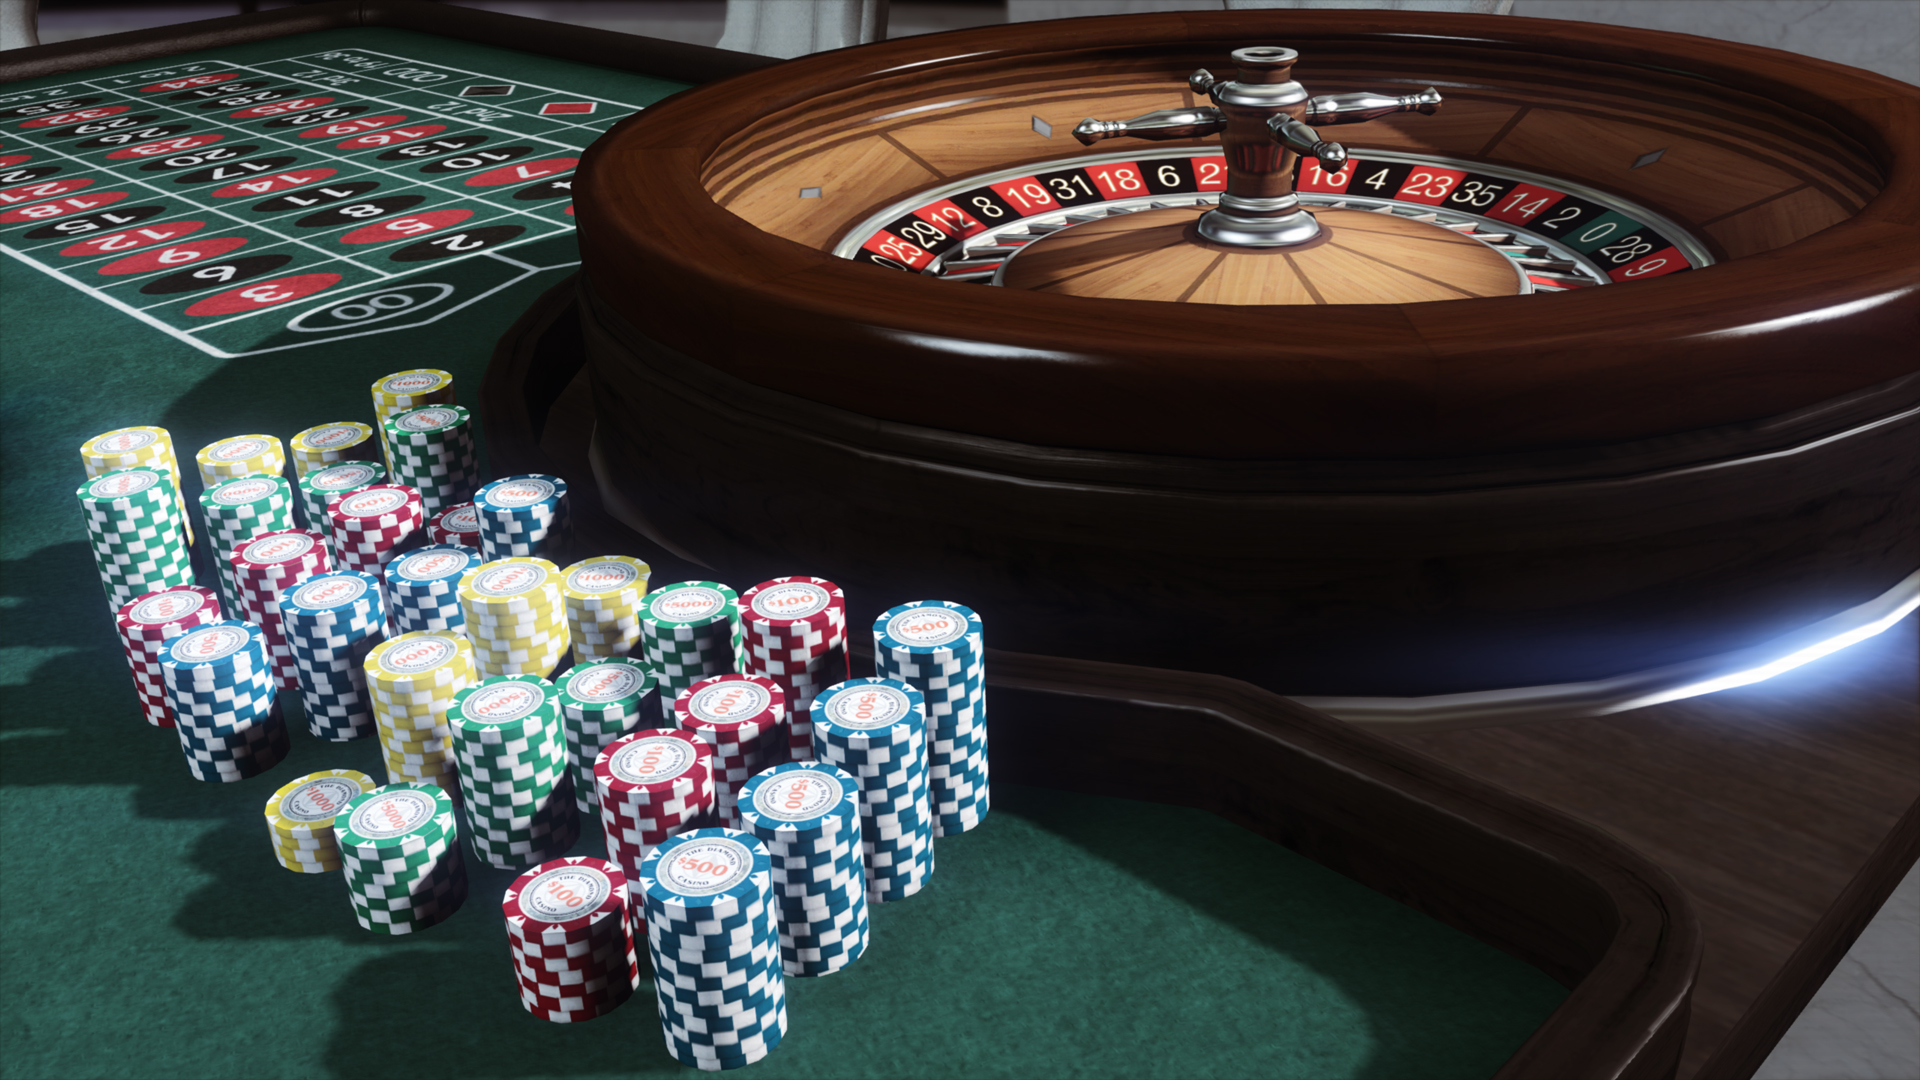 Have fun to the fullest with the best games and poker game agents (agen judi poker)